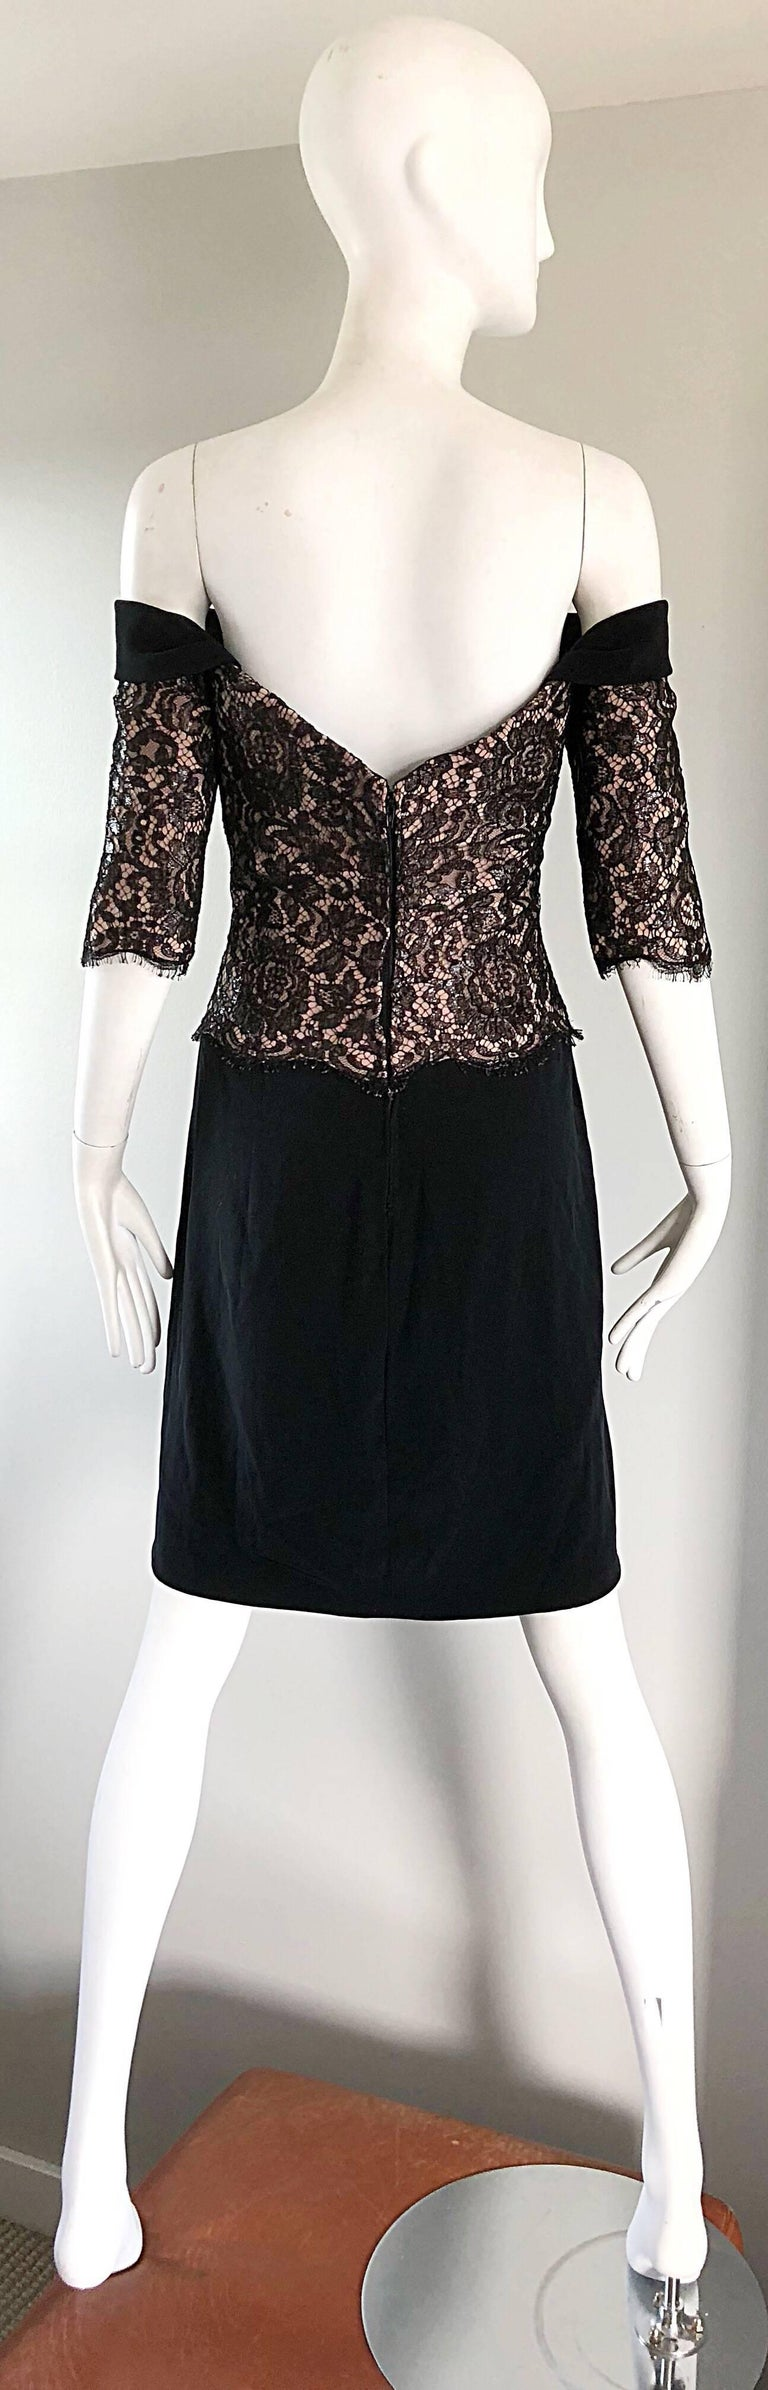 Vintage Bob Mackie Size 14 Black + Nude Lace Crepe Off - Shoulder 1990s Dress 6